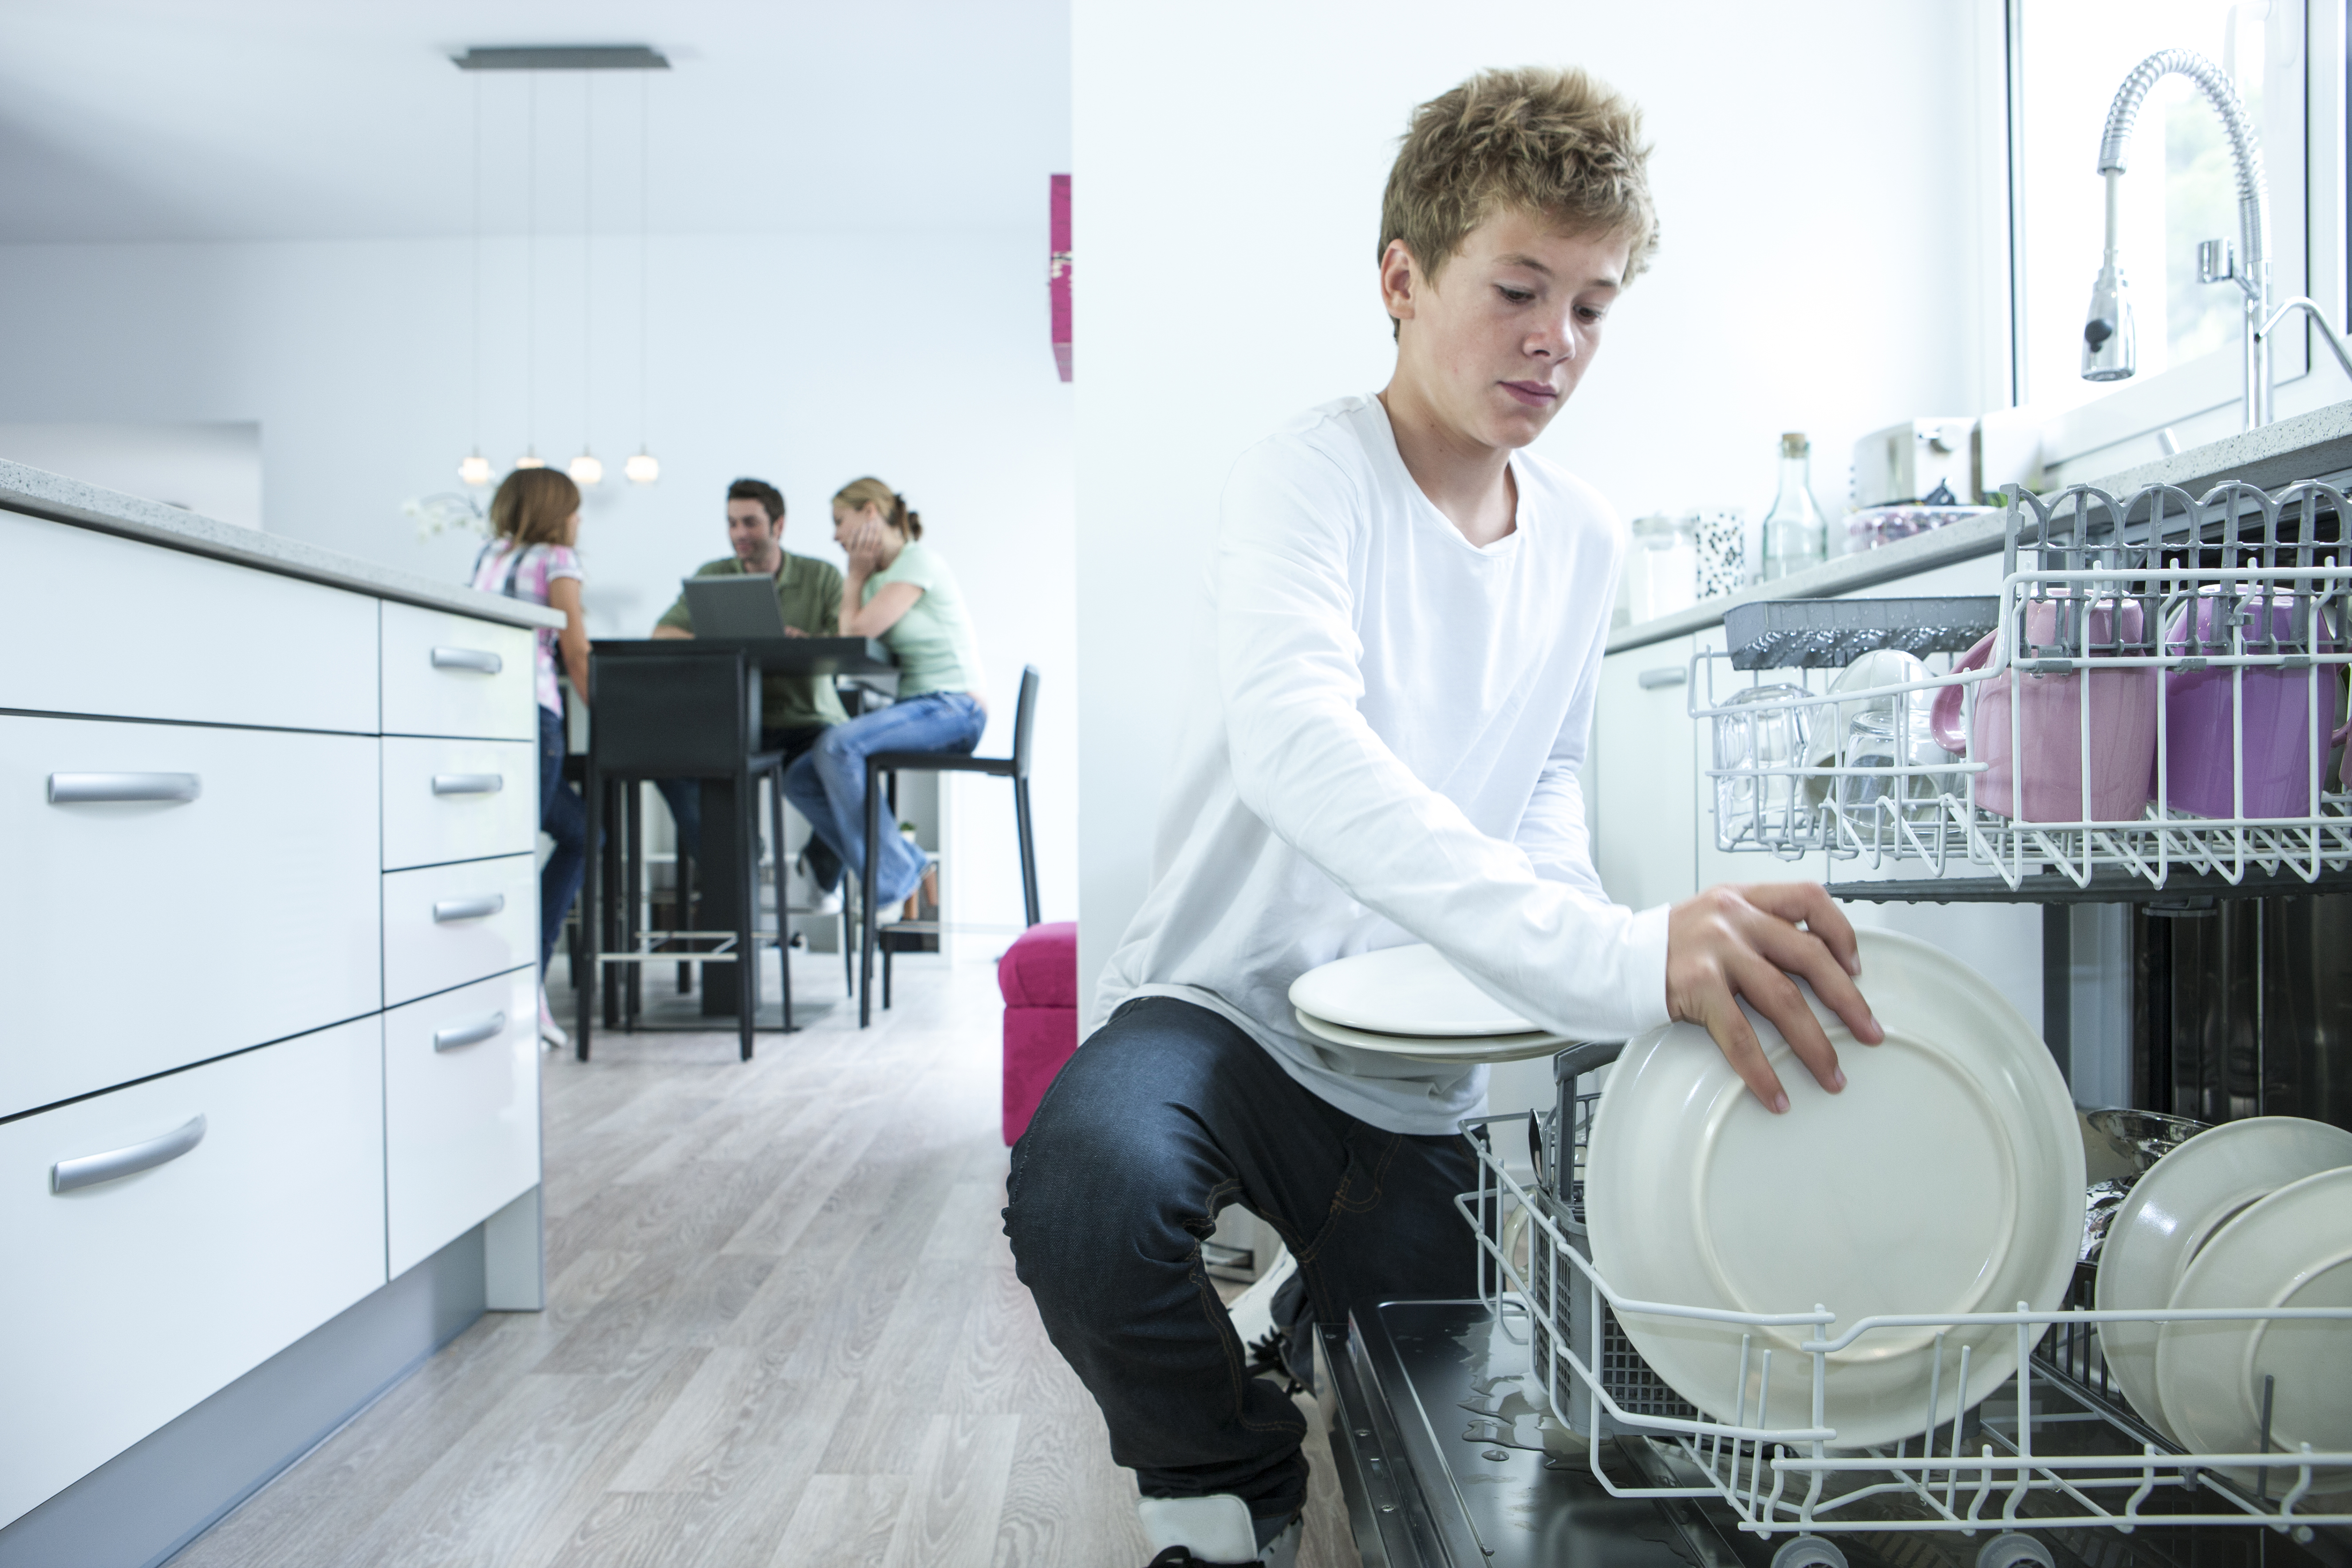 How To Hook Up A Dishwasher Where There Is No Existing Dishwasher